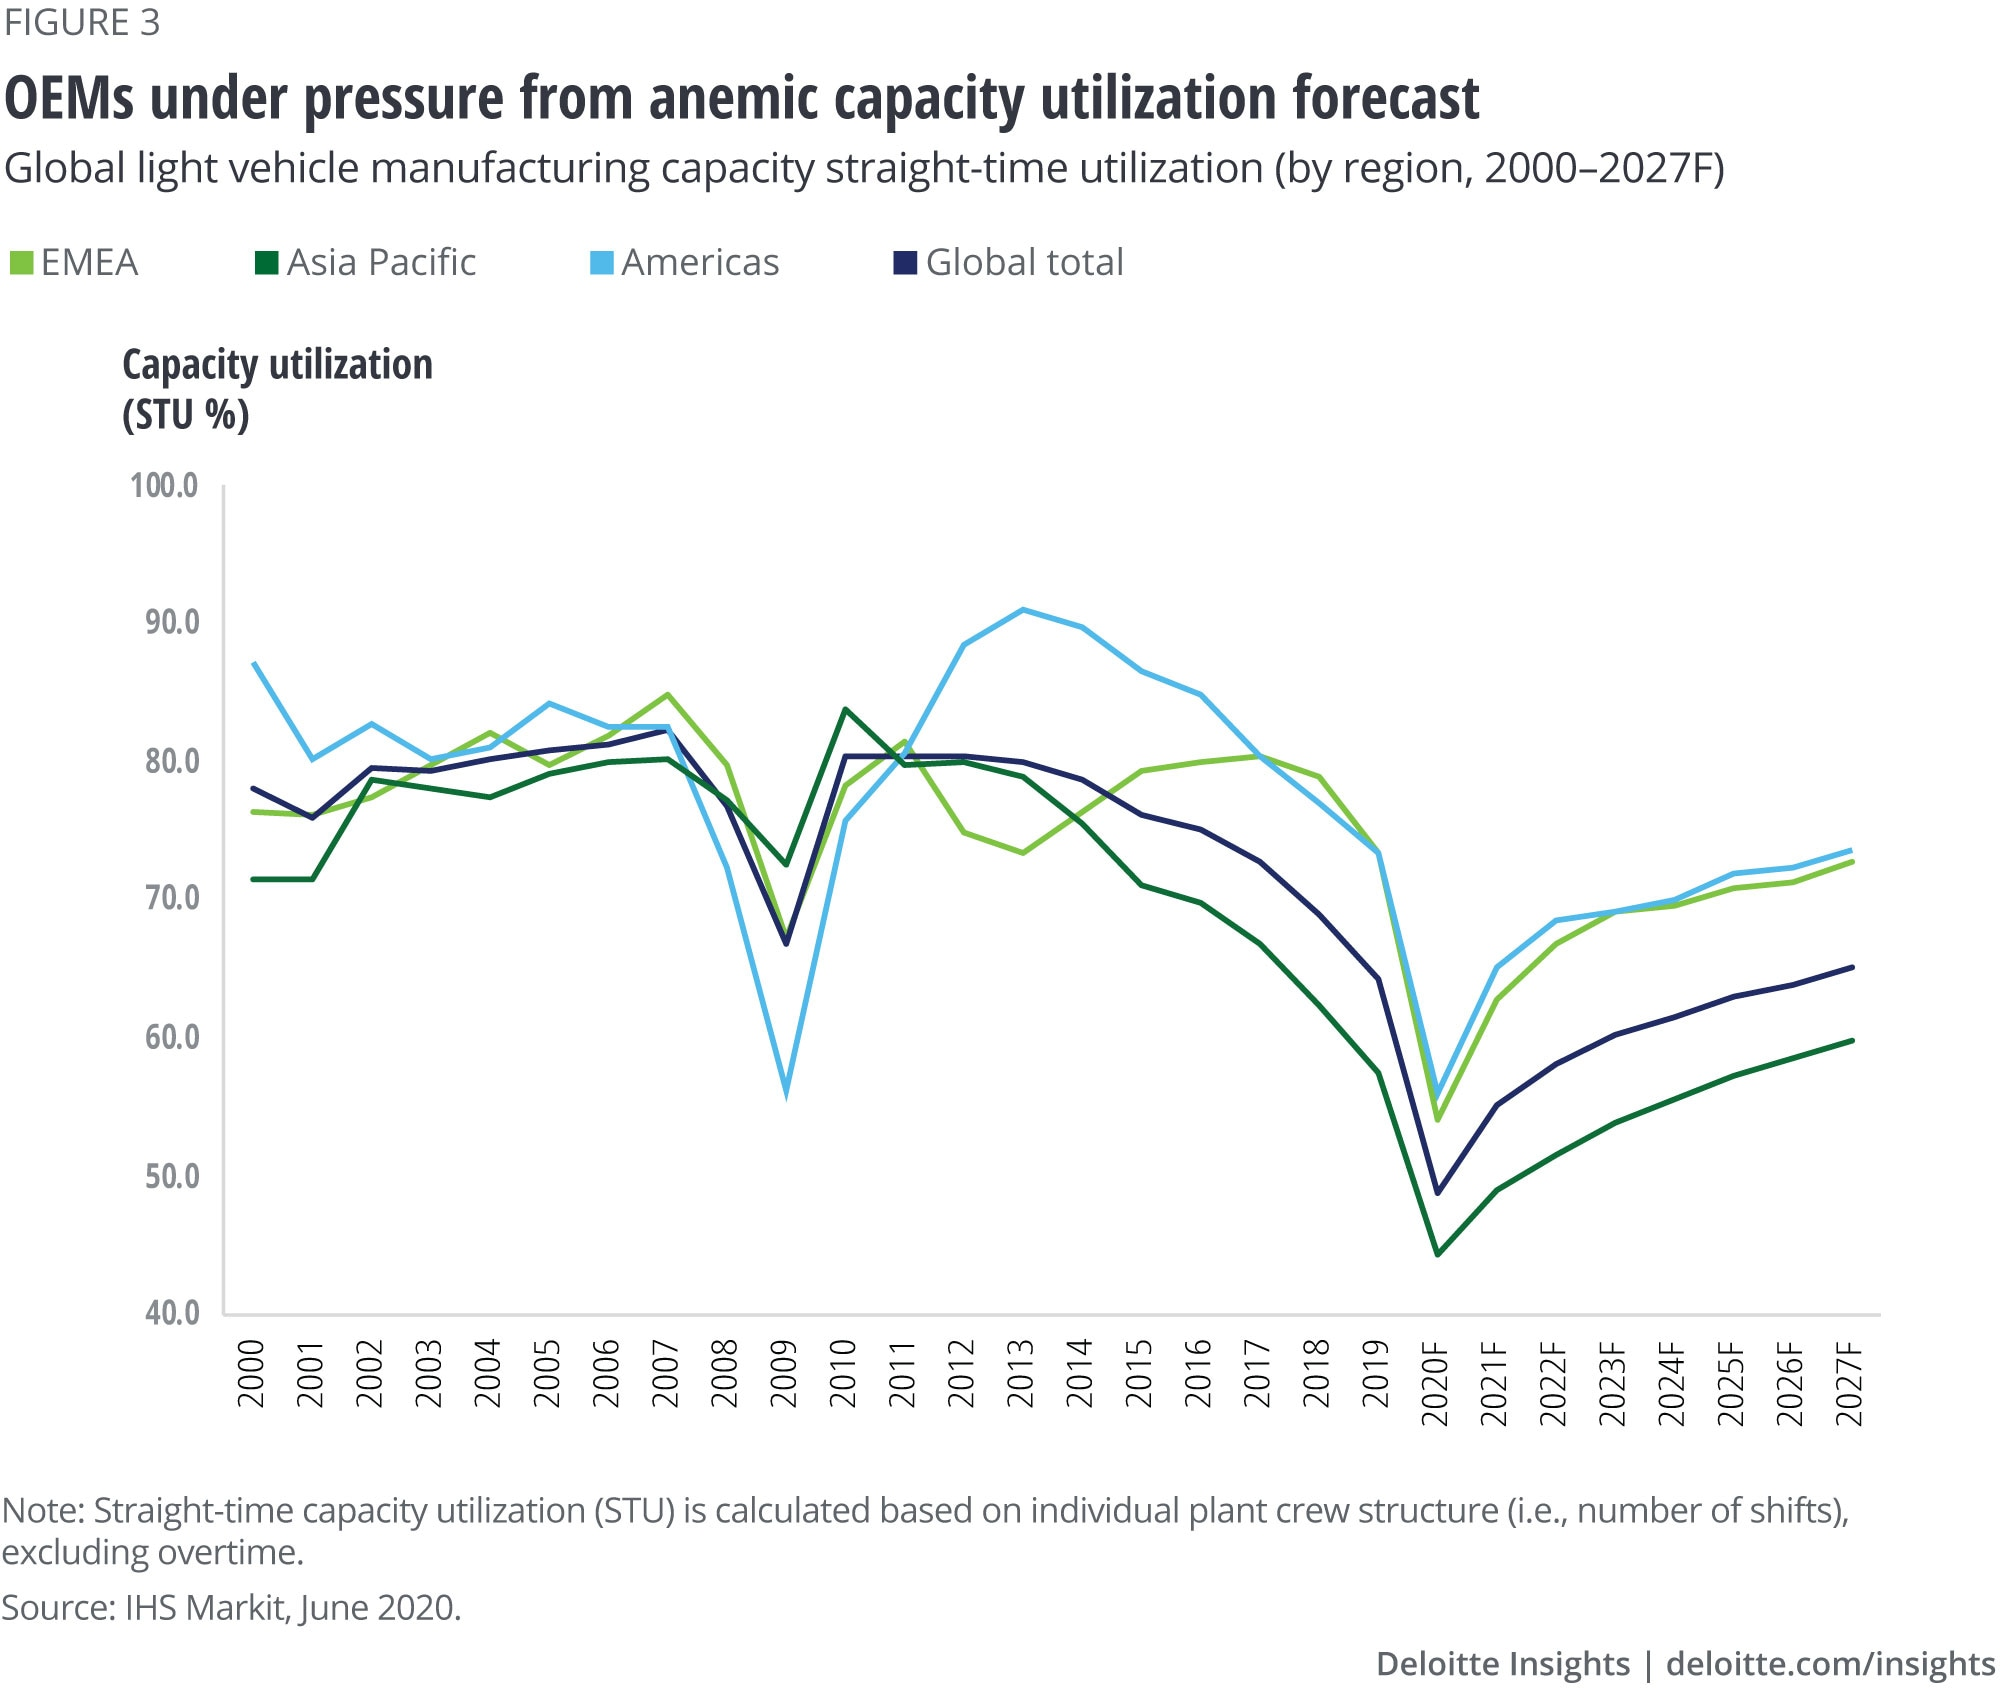 OEMs under pressure from anemic capacity utilization forecast